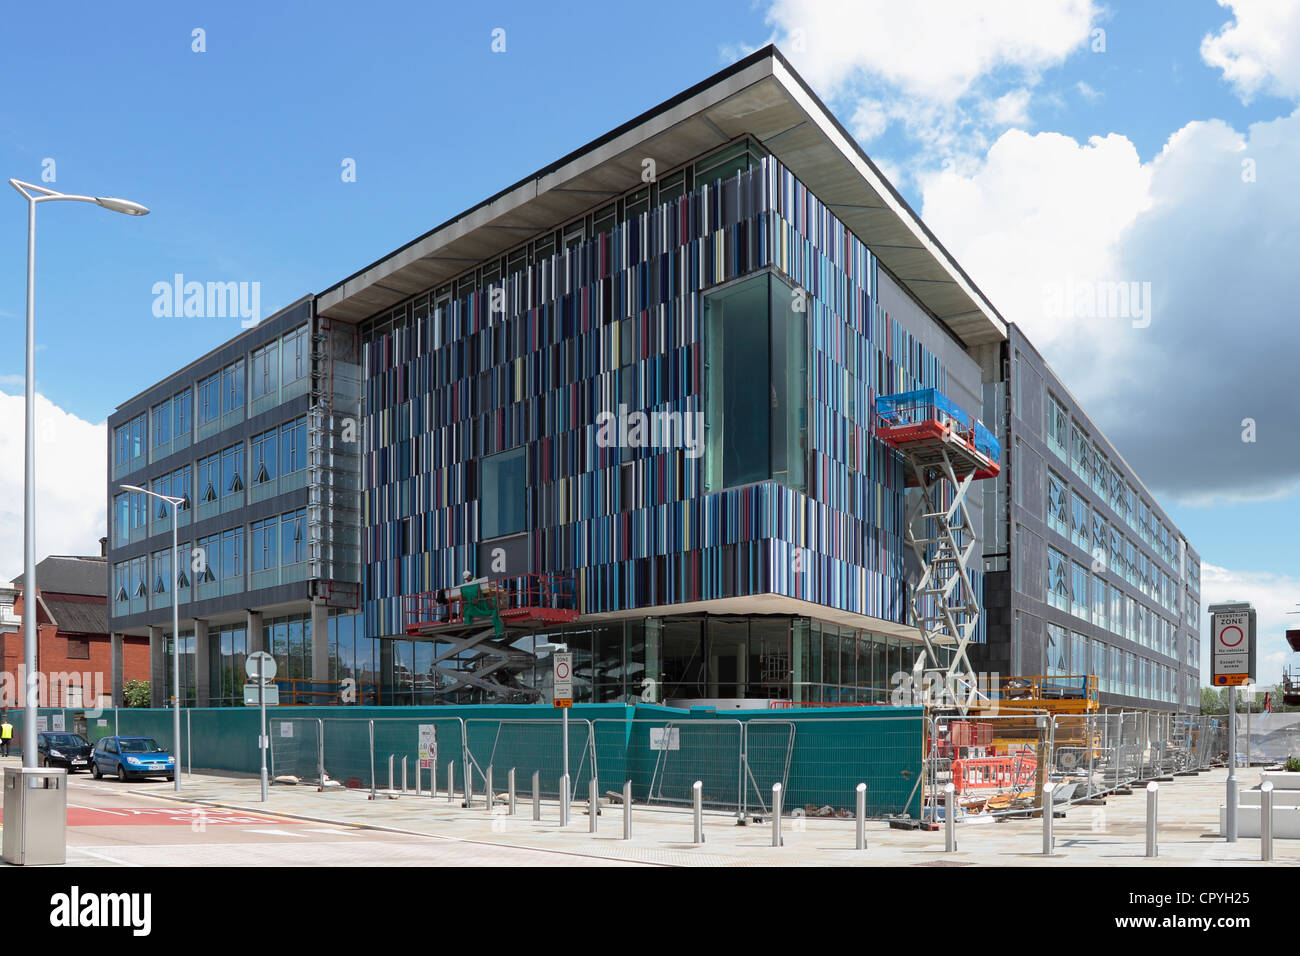 The new Doncaster Council Office at the new Sir Nigel Gresley Civic Square under construction in Doncaster Stock Photo